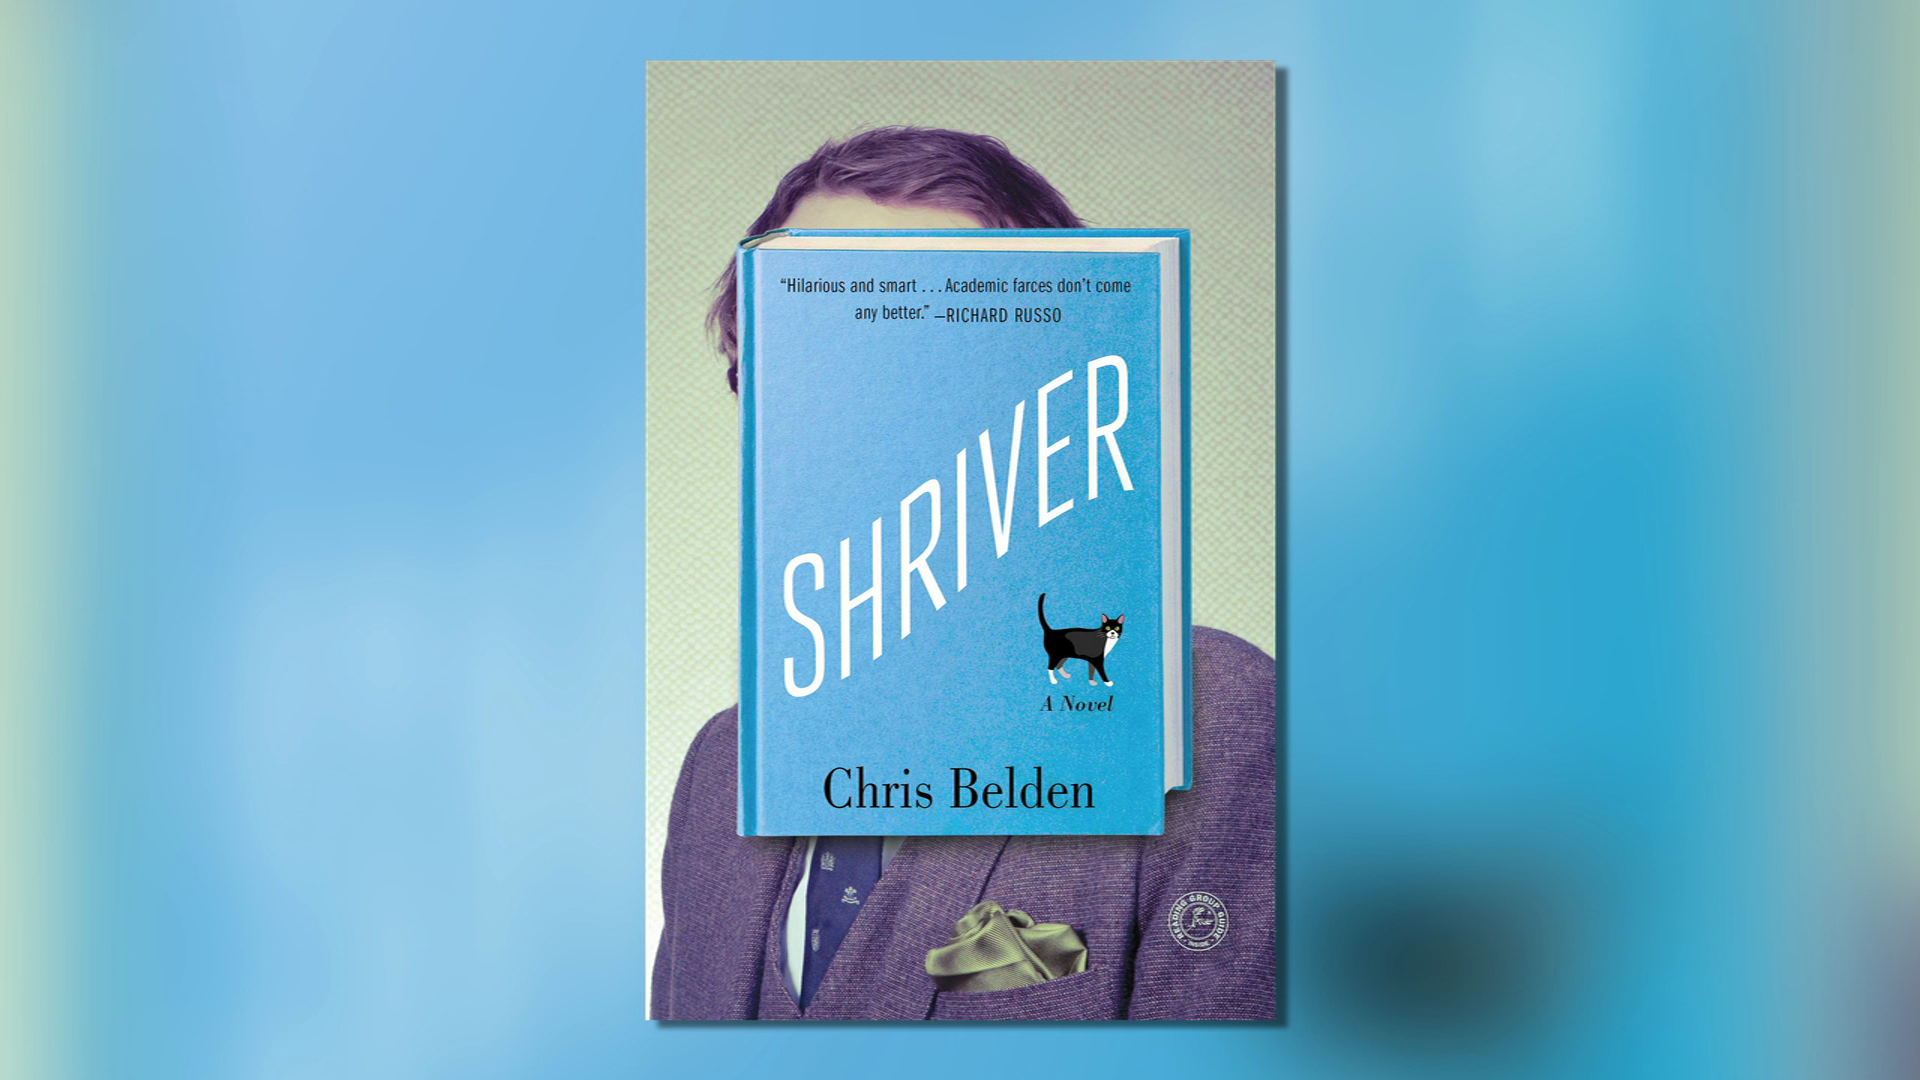 'Shriver' by Chris Belden